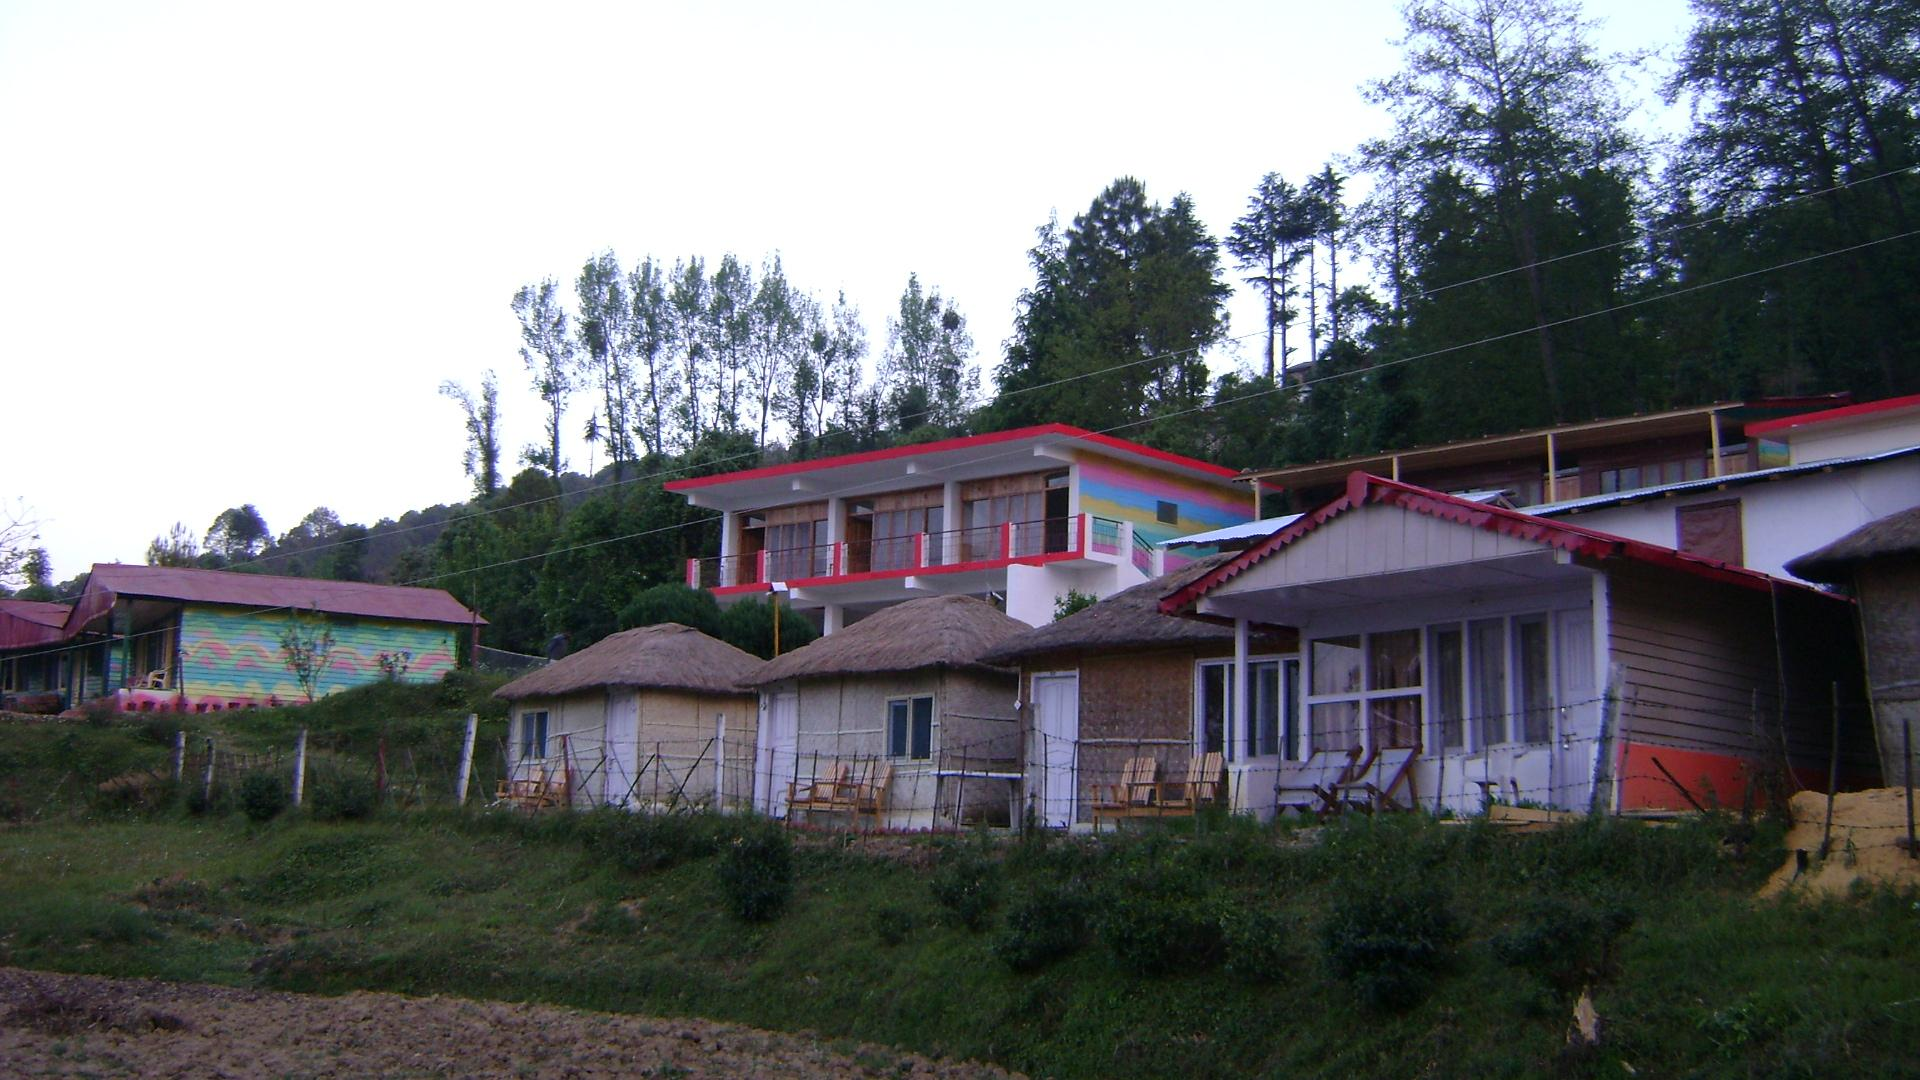 Discount Blossom hotel and resort